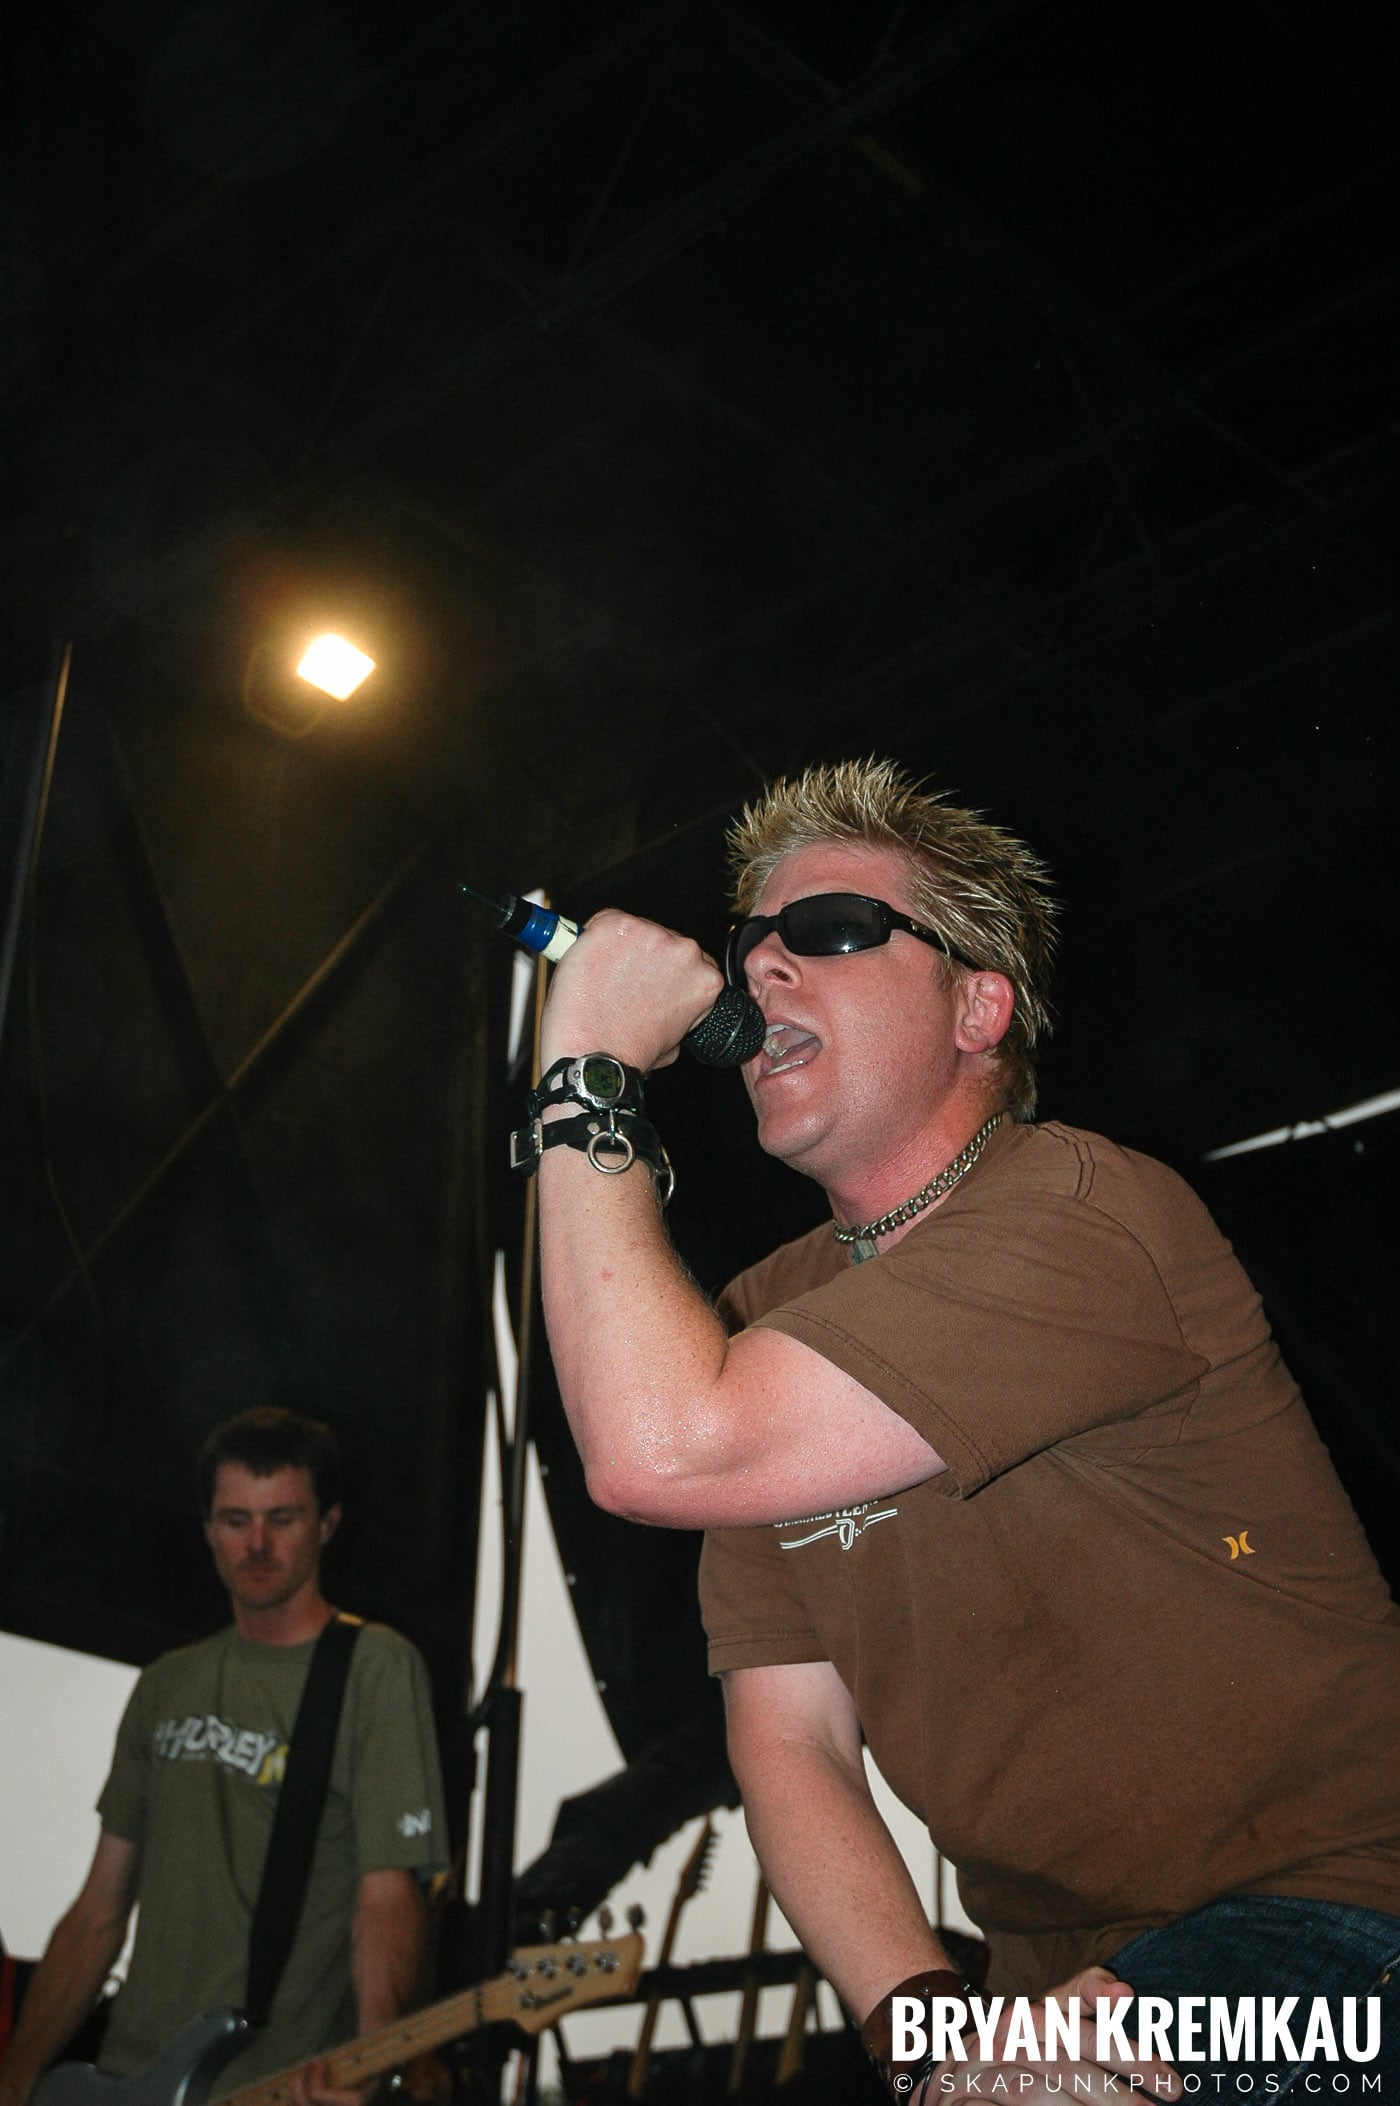 The Offspring @ Warped Tour 05, NYC - 8.12.05 (14)